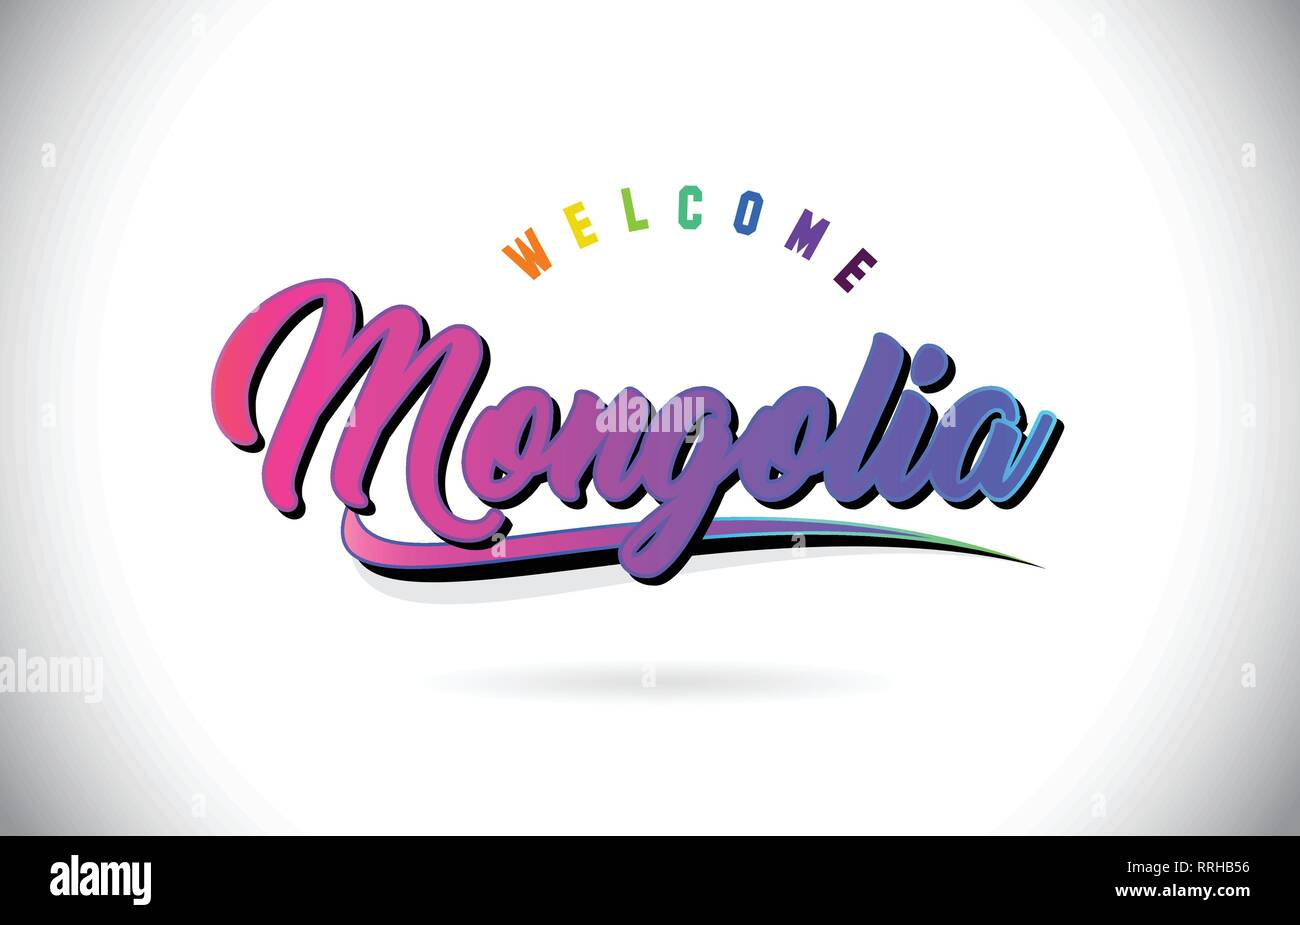 Mongolia Welcome To Word Text with Creative Purple Pink Handwritten Font and Swoosh Shape Design Vector Illustration. - Stock Vector